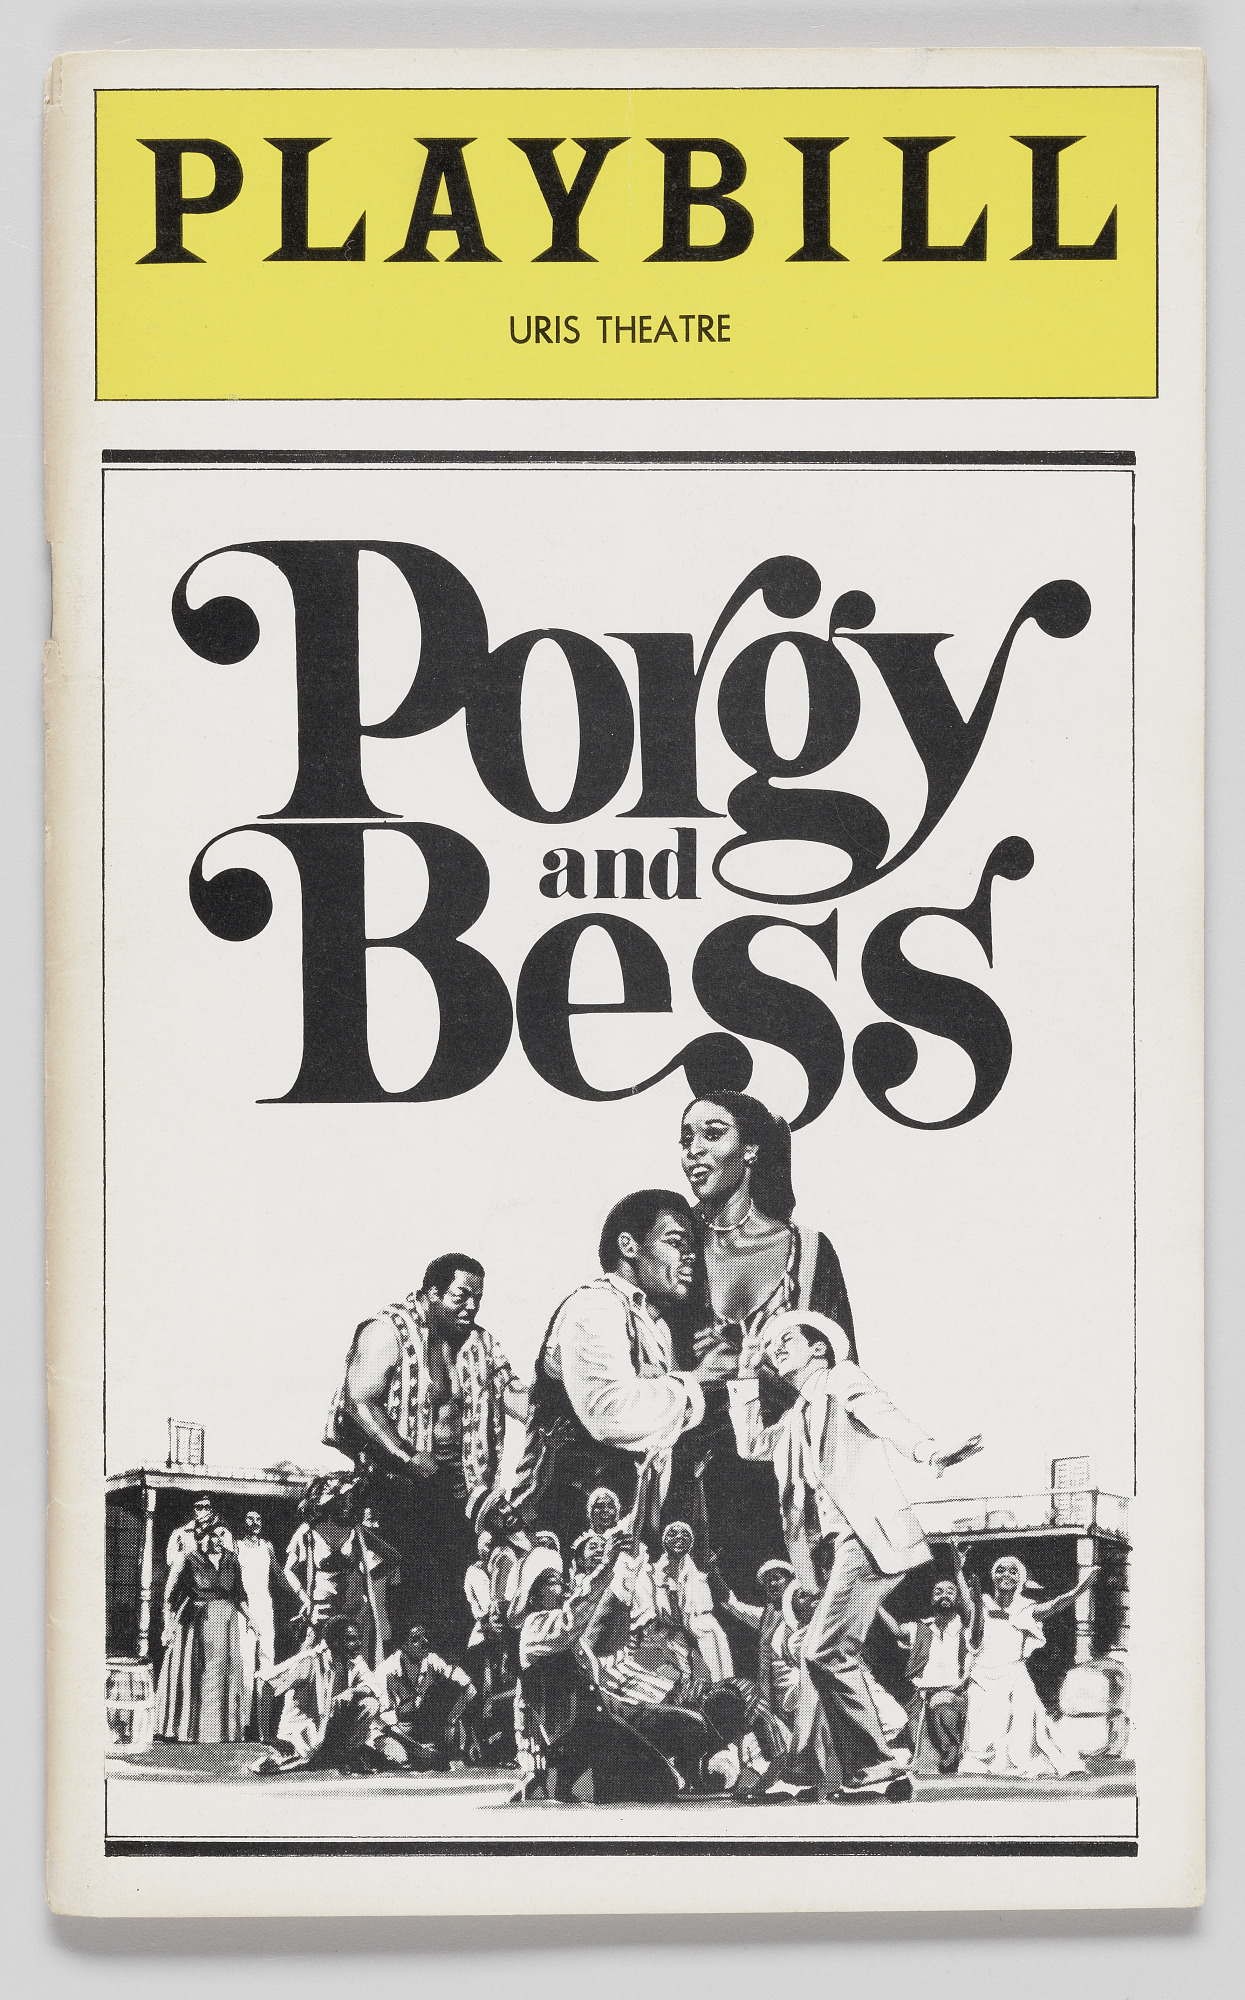 Image for Playbill for Porgy and Bess